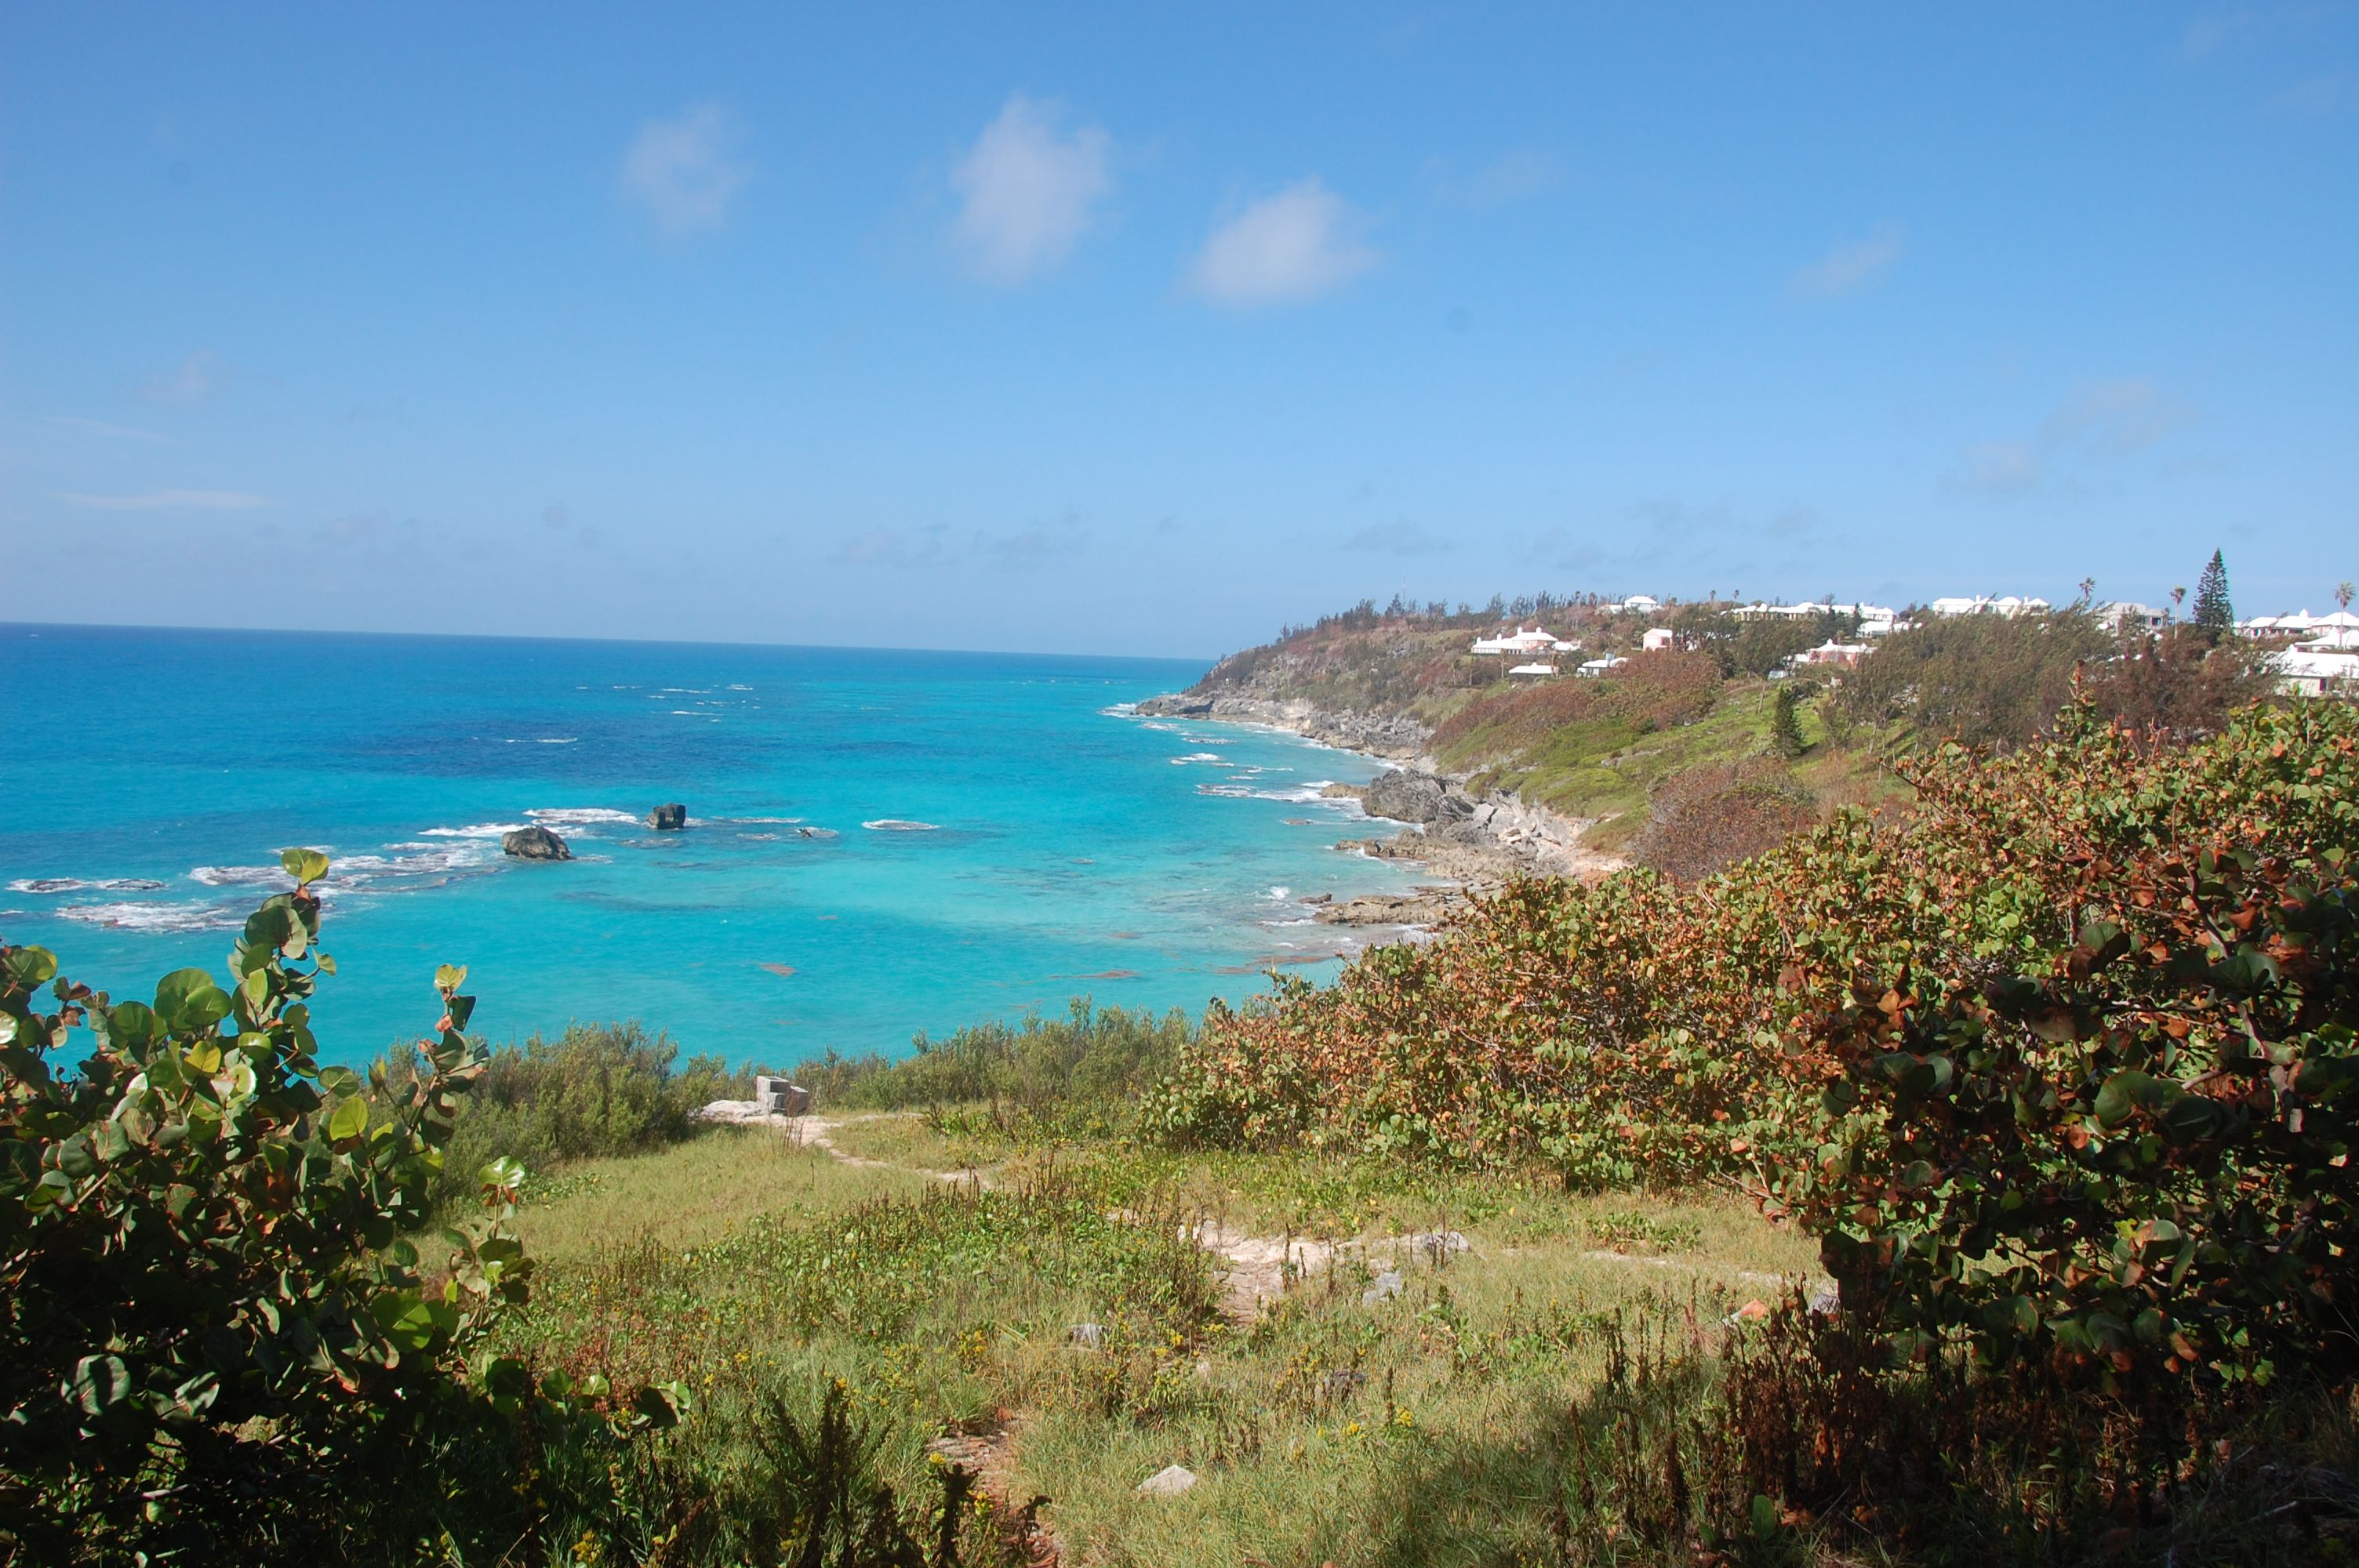 Bermuda – More than just the shorts